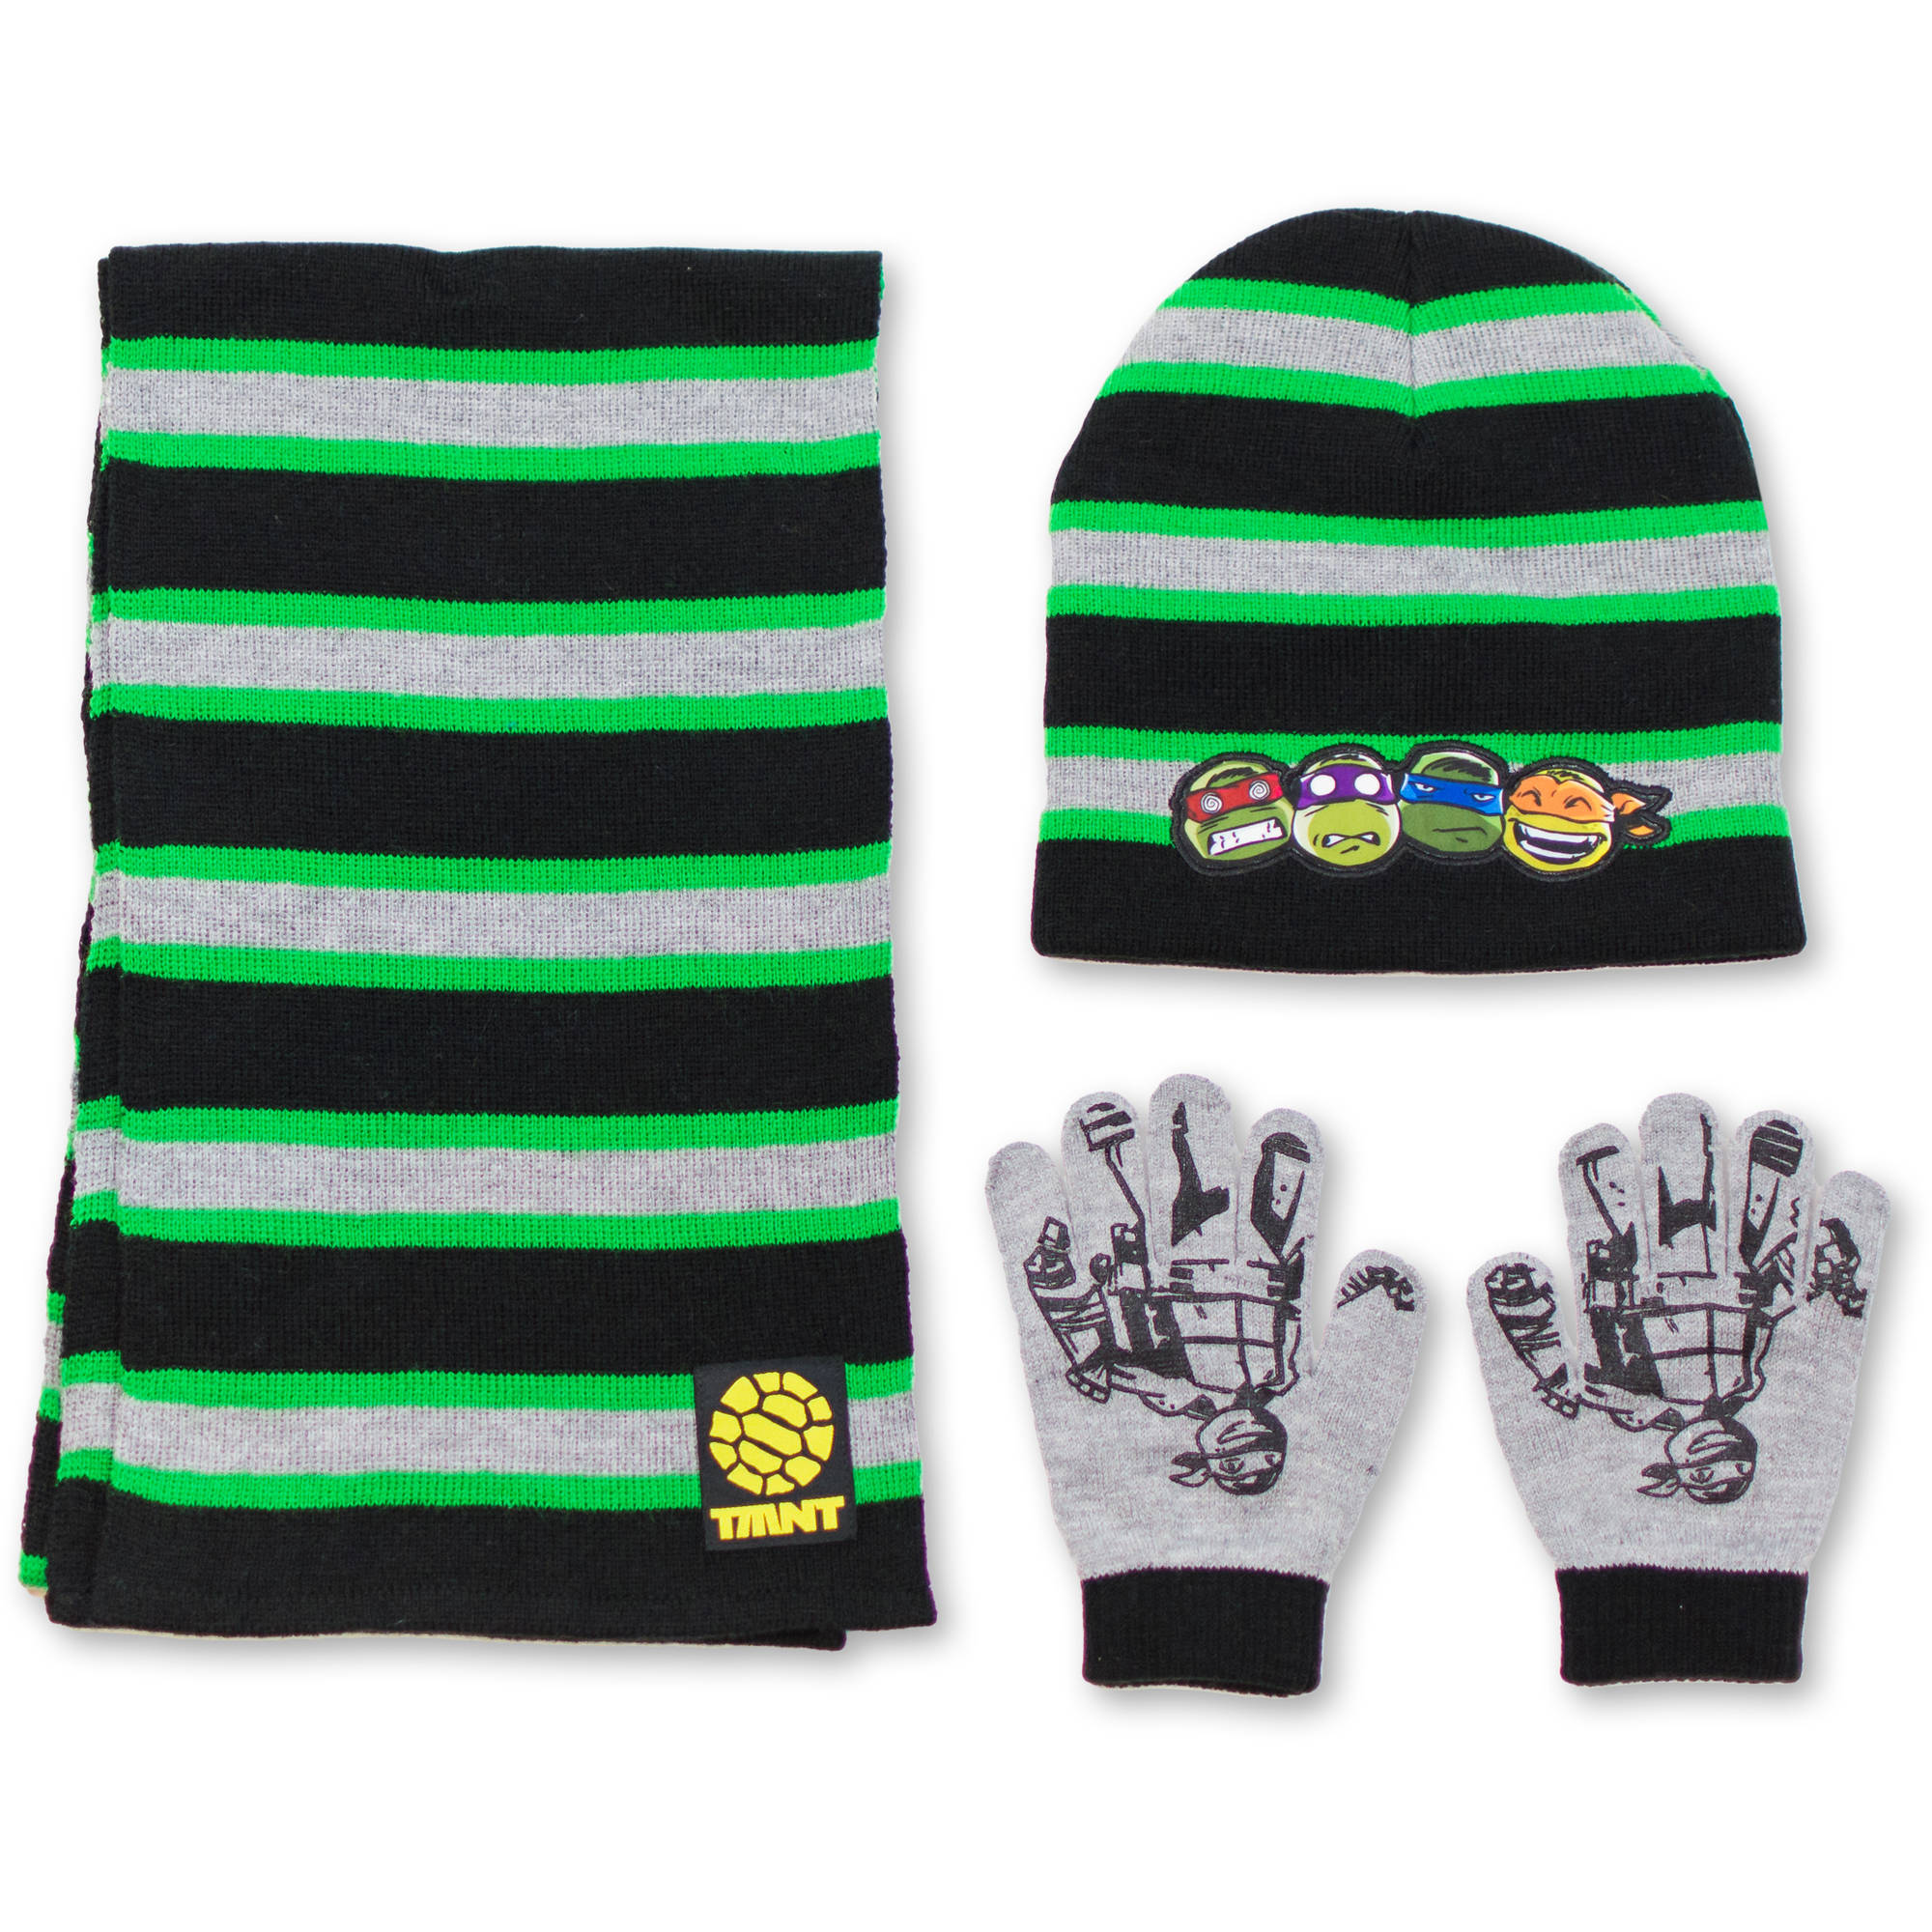 Teenage Mutant Ninja Turtles 3Pc Hat, Glove, Scarf Set